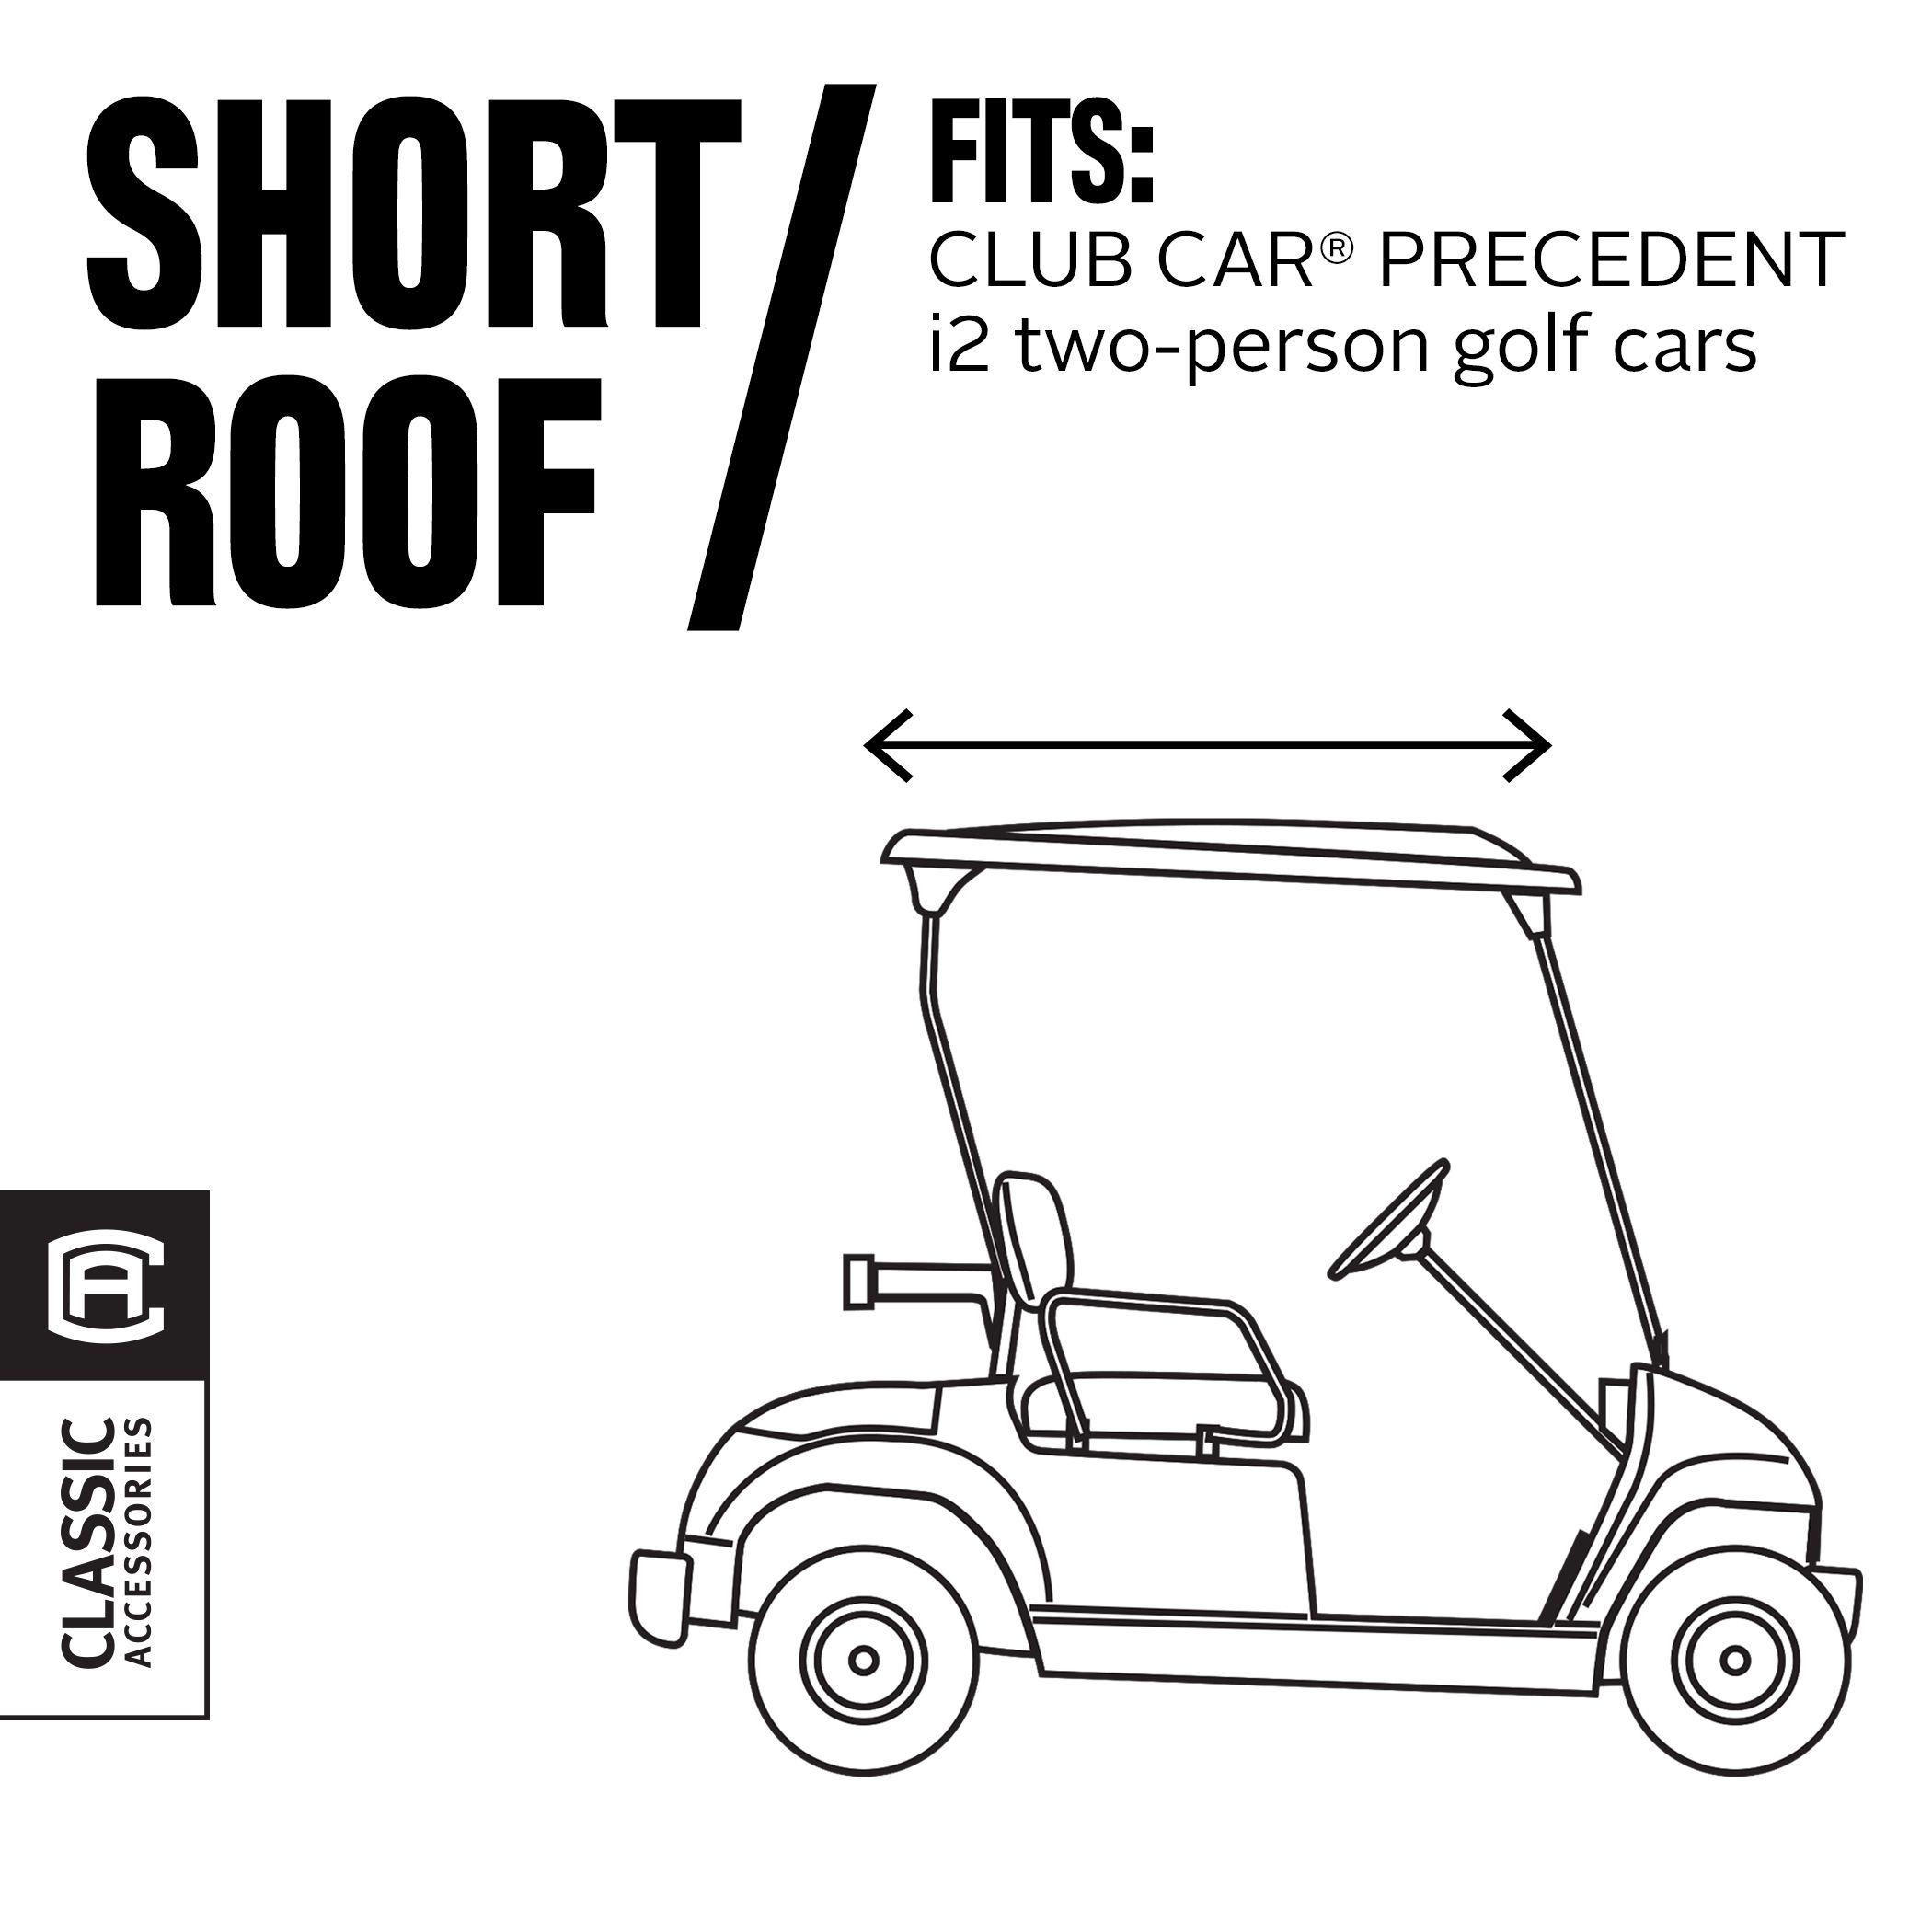 FadeSafe Club Car Precedent Golf Cart Enclosure on club car golf cart design, club car golf cart manufacturer, club car golf cart tires, club car golf cart motor, club car golf cart value, club car golf cart doors, club car golf cart speed controller, club car golf cart brakes, club car golf cart front suspension, club car golf cart engine, club car golf cart wheels, club car golf cart colors, club car golf cart top,